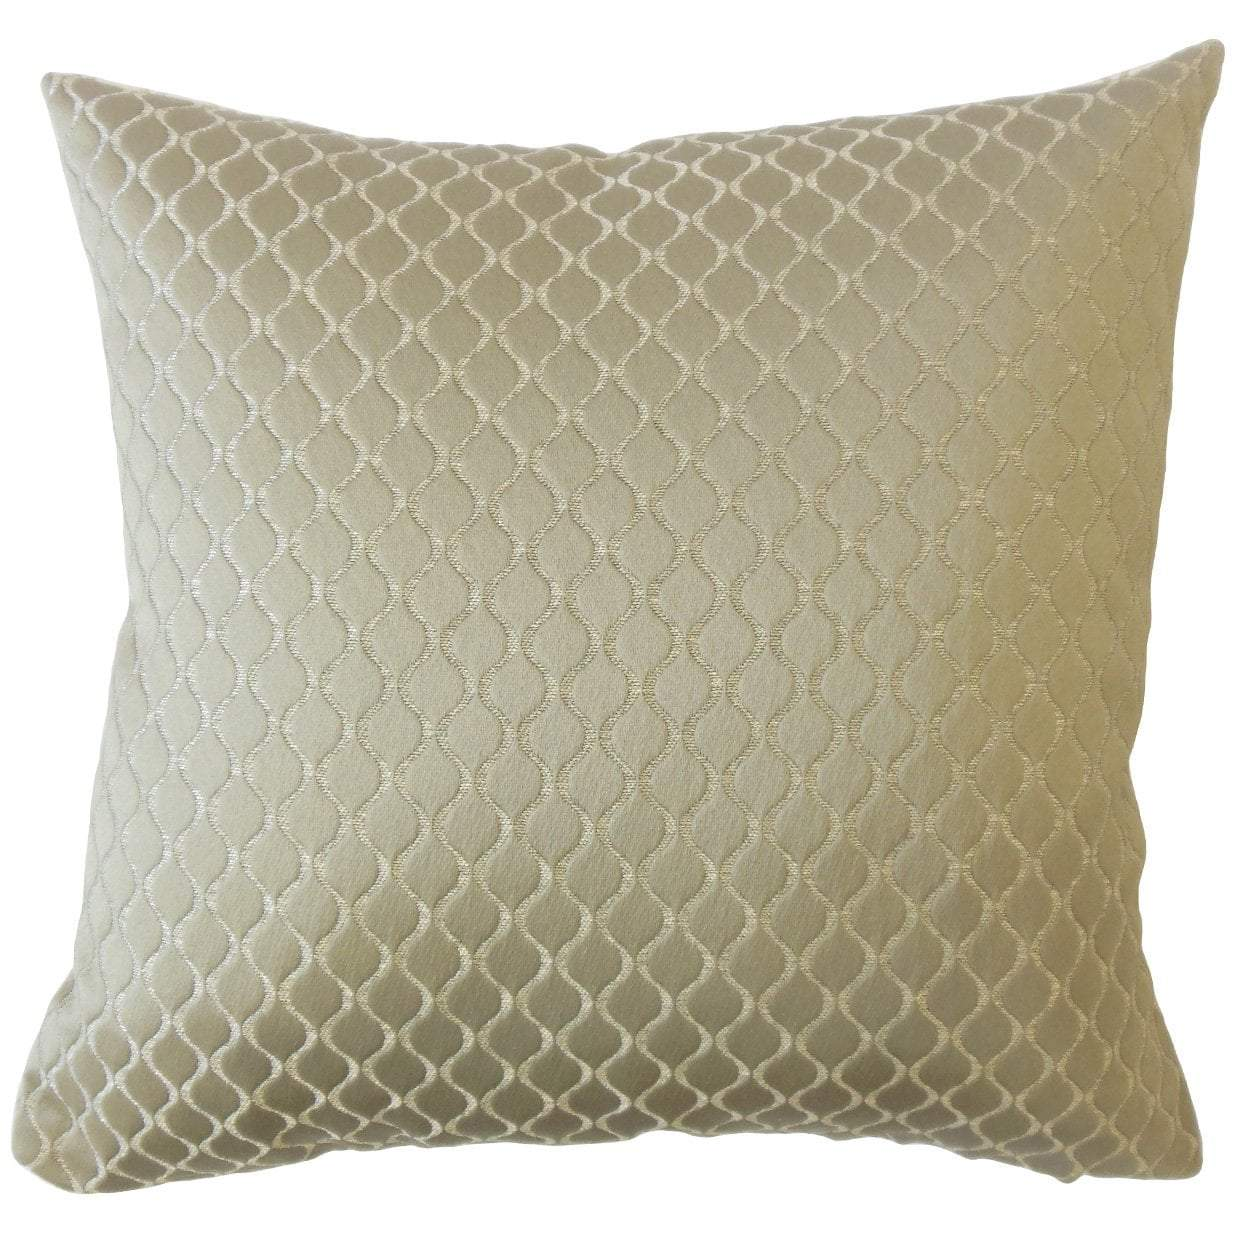 Gray Synthetic Solid Luxe Throw Pillow Cover